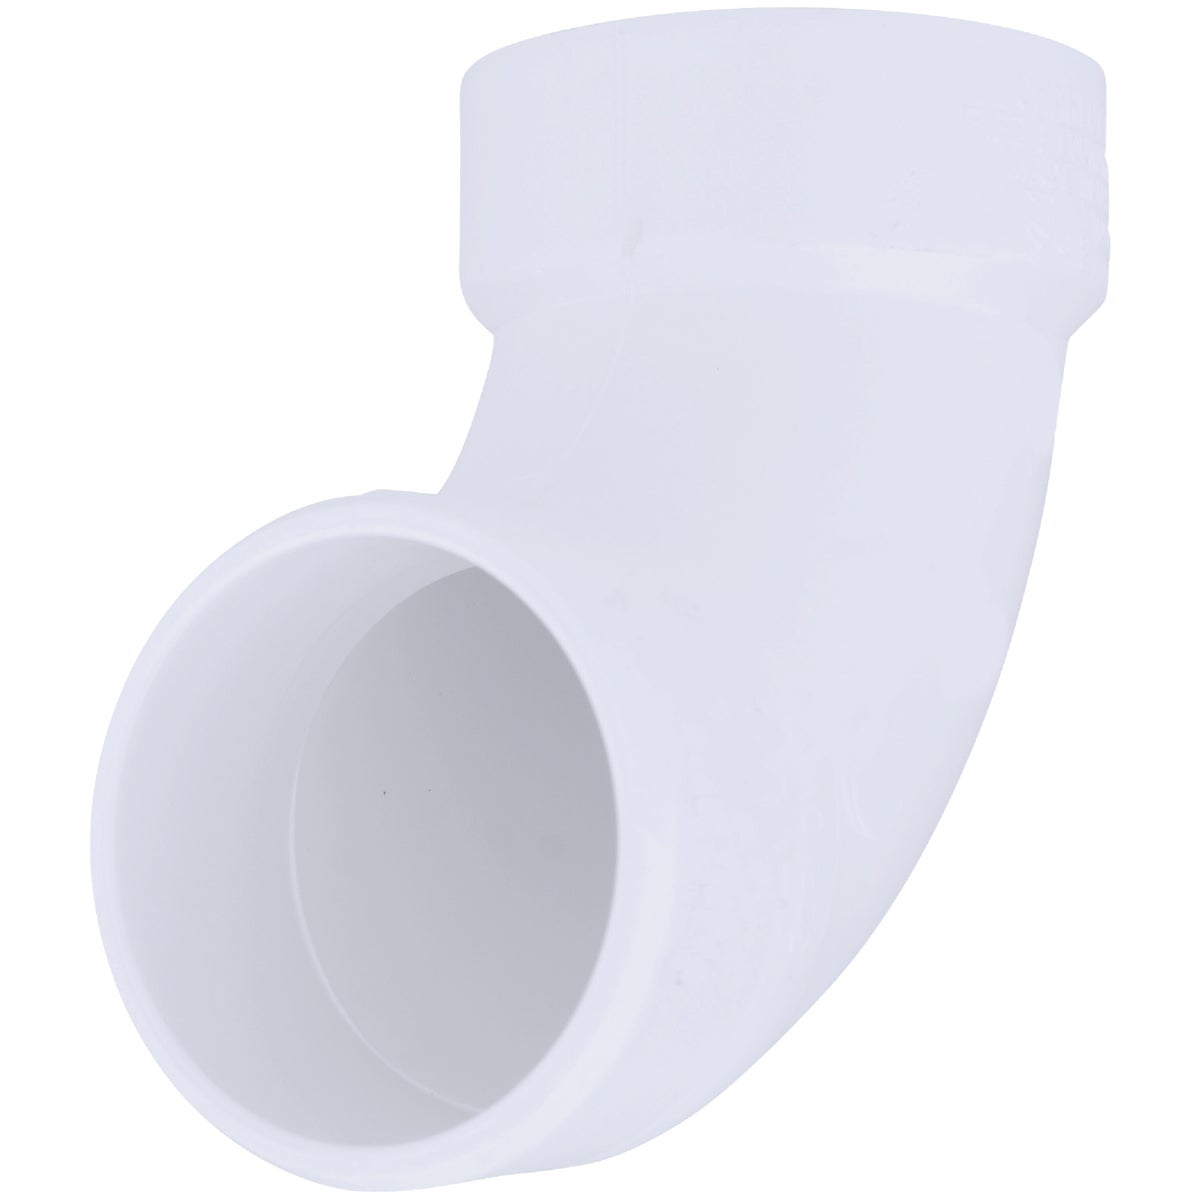 "2""90D DWV SANI STR ELBOW - 72926 by Genova Inc  Pvc Dwv"